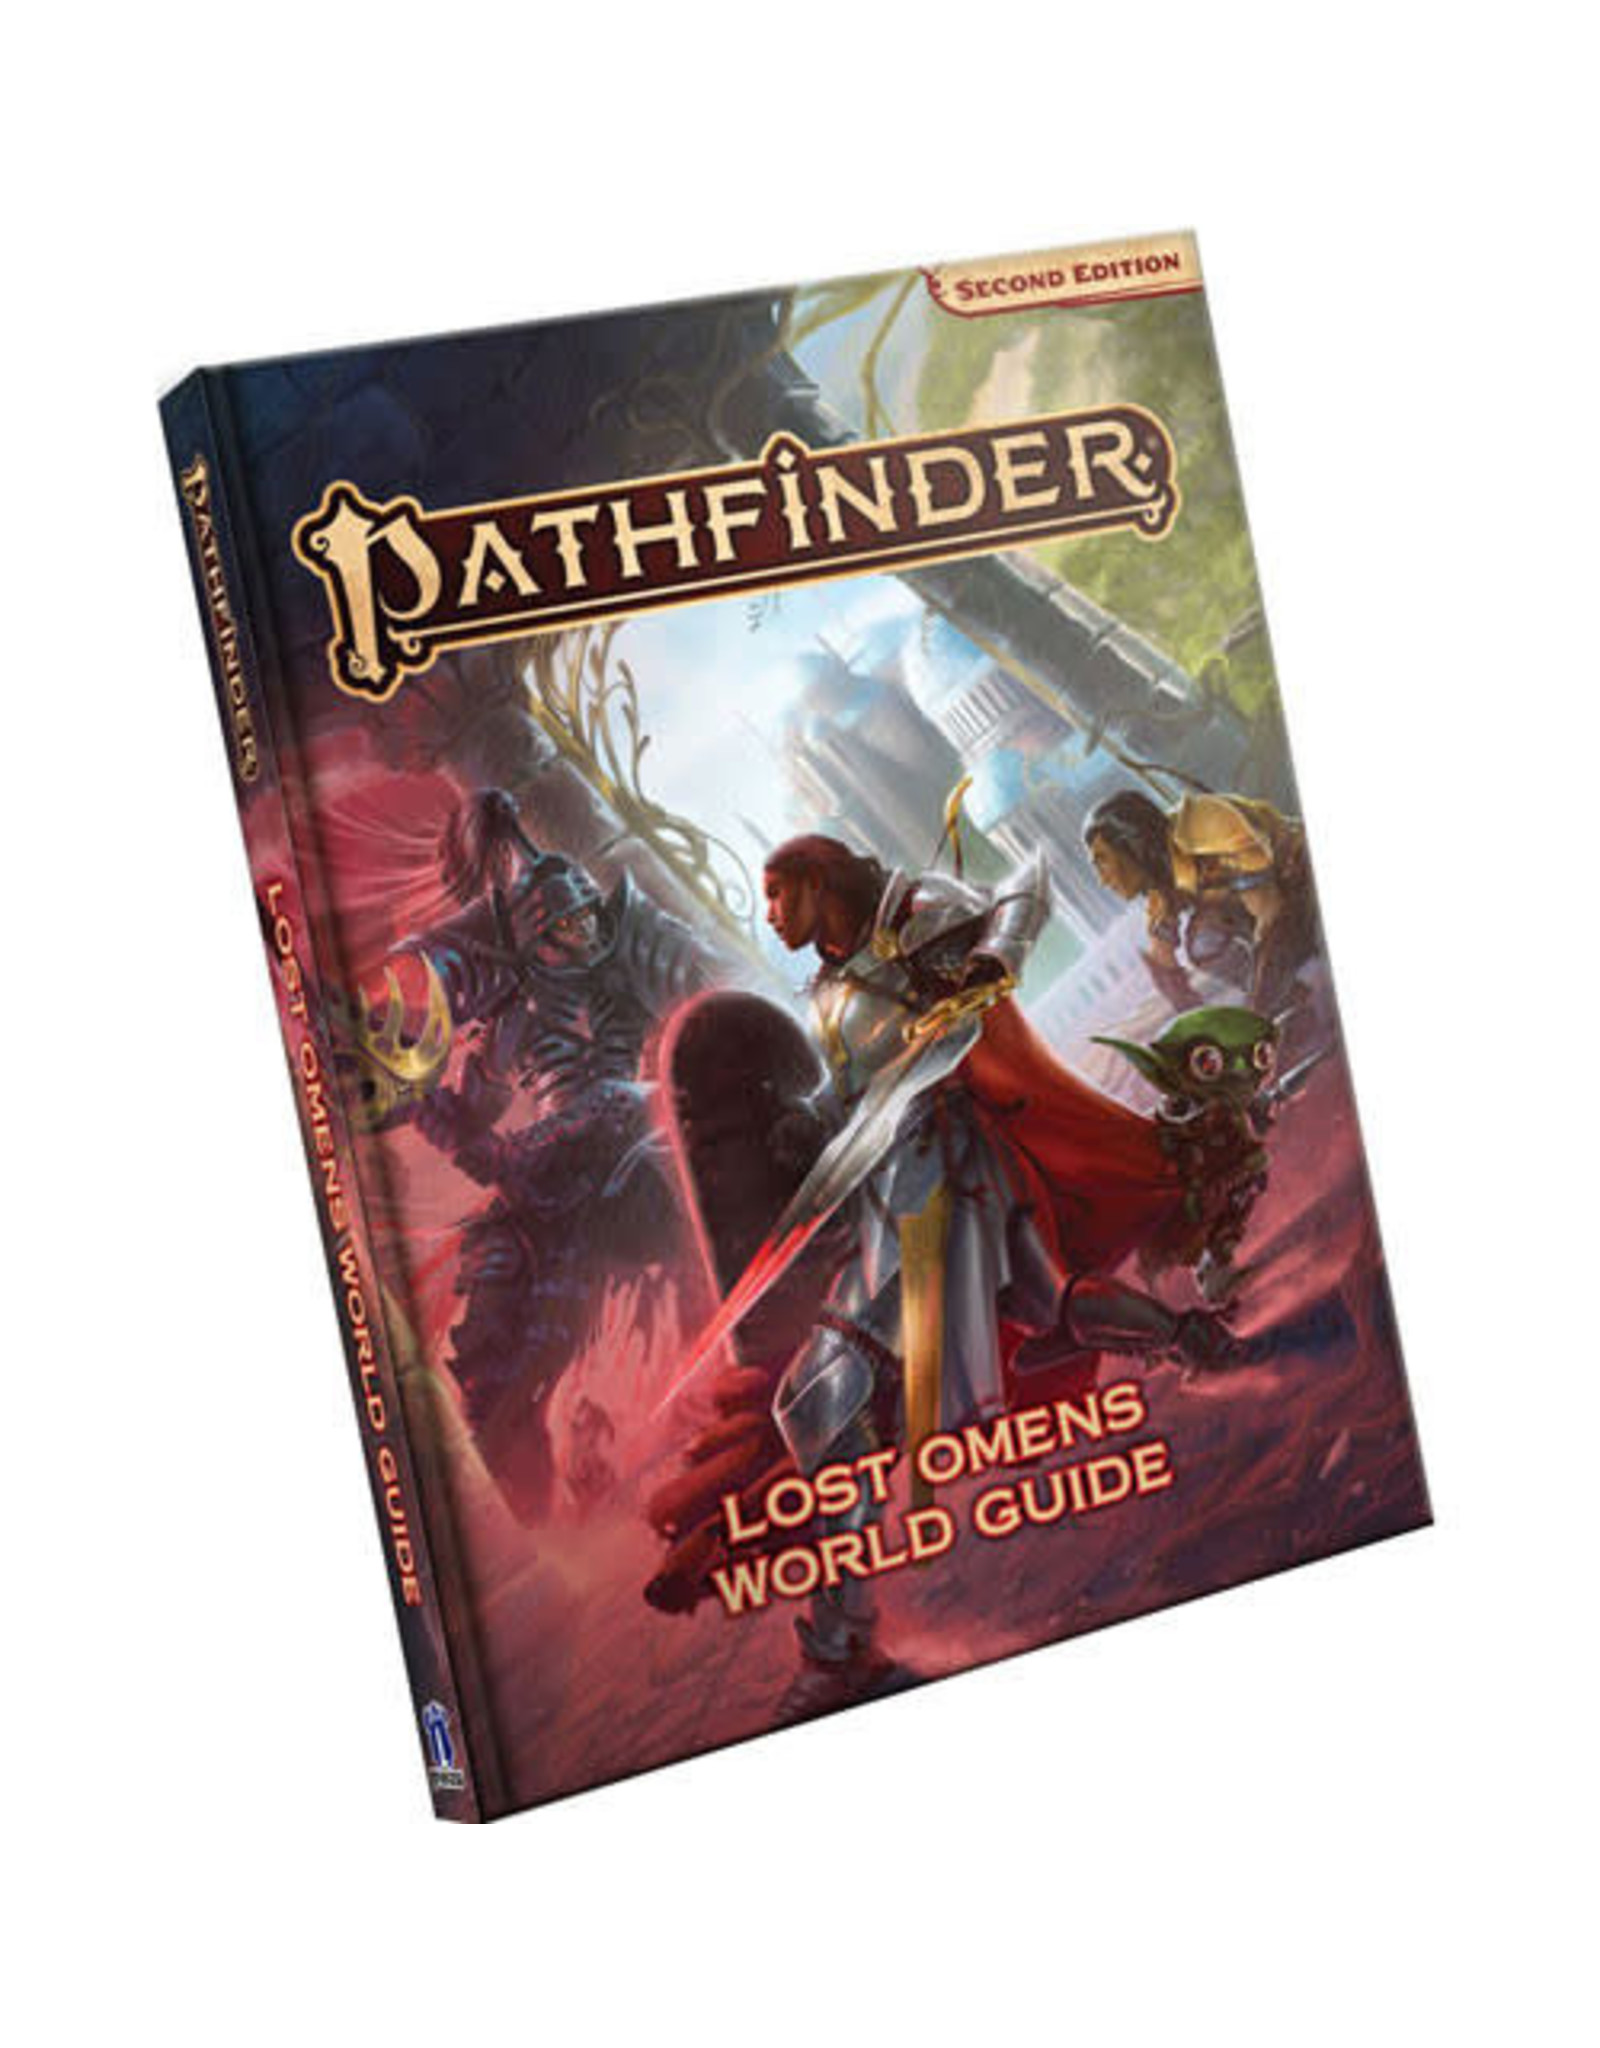 Paizo Publishing Pathfinder RPG: Lost Omens - World Guide Hardcover (P2)